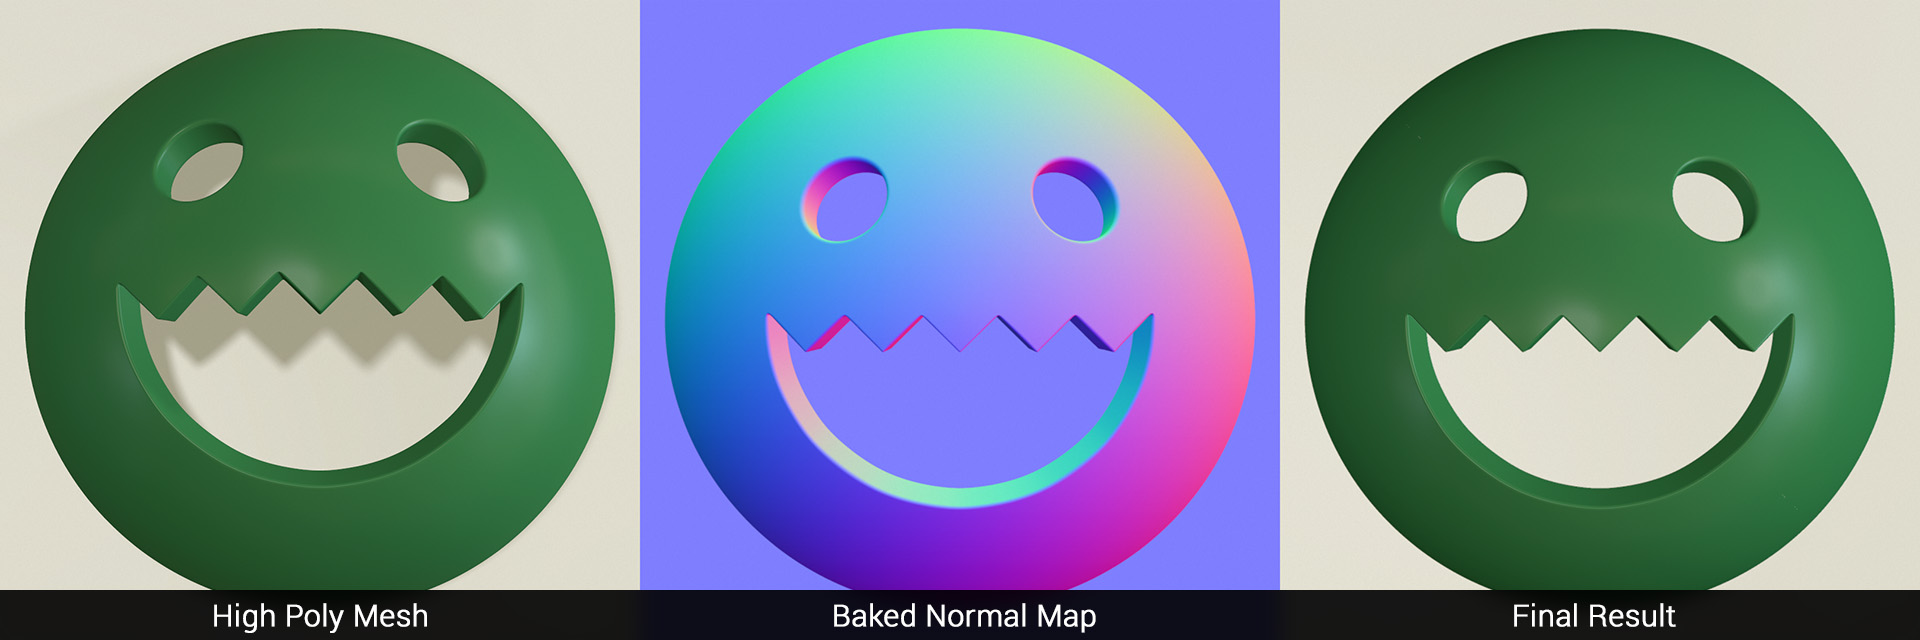 What is a normal map?